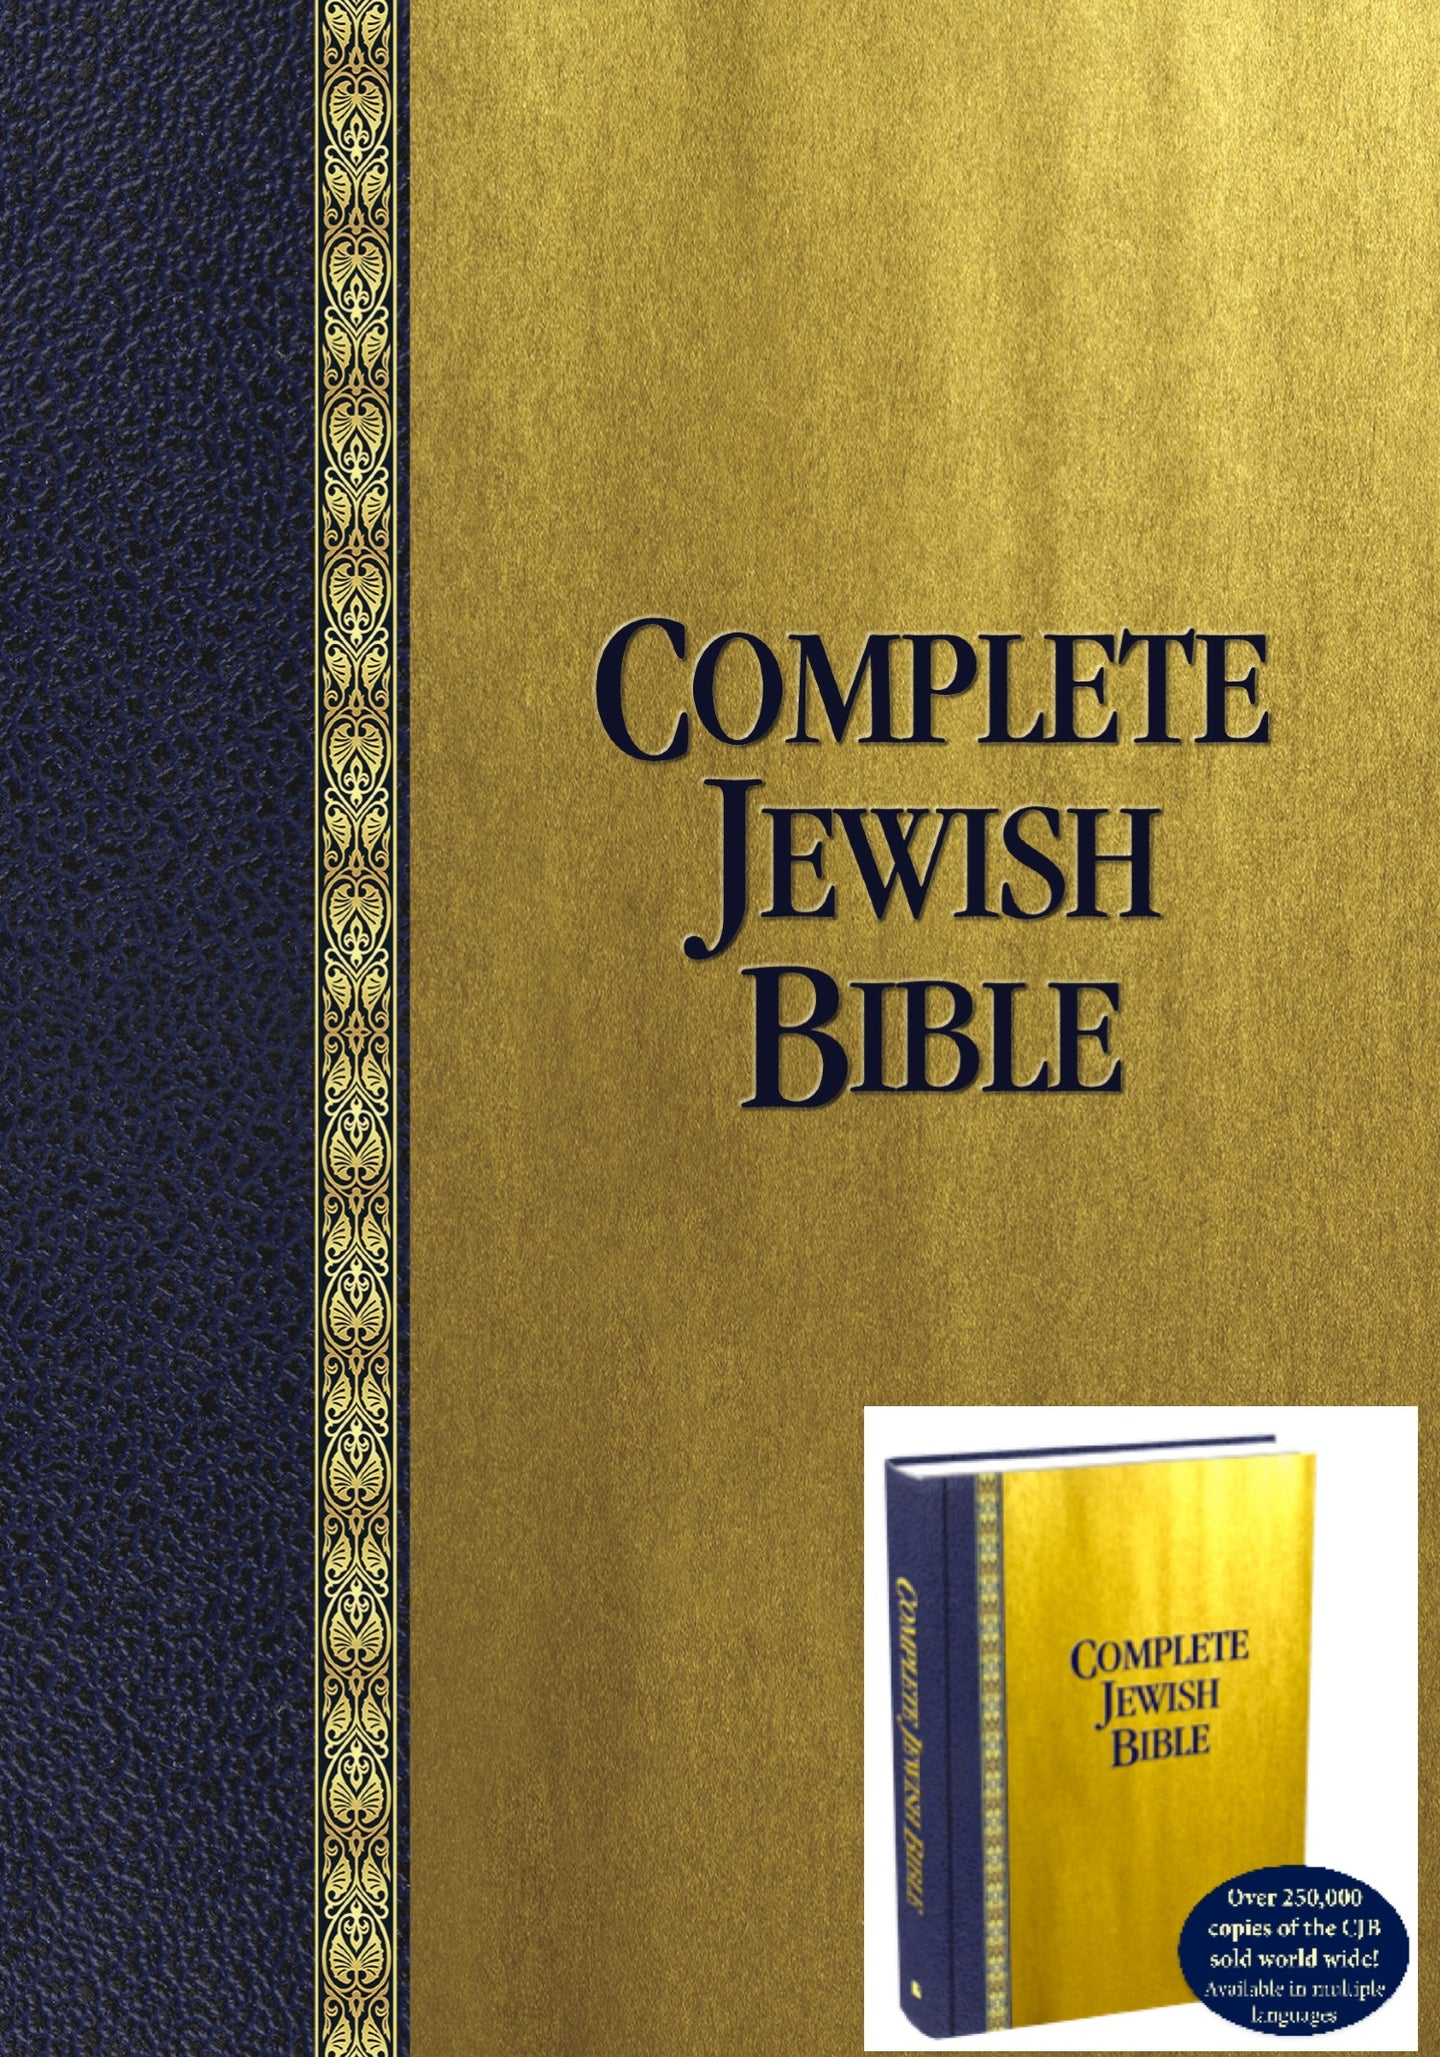 Complete Jewish Bible: Congregational Reading Version